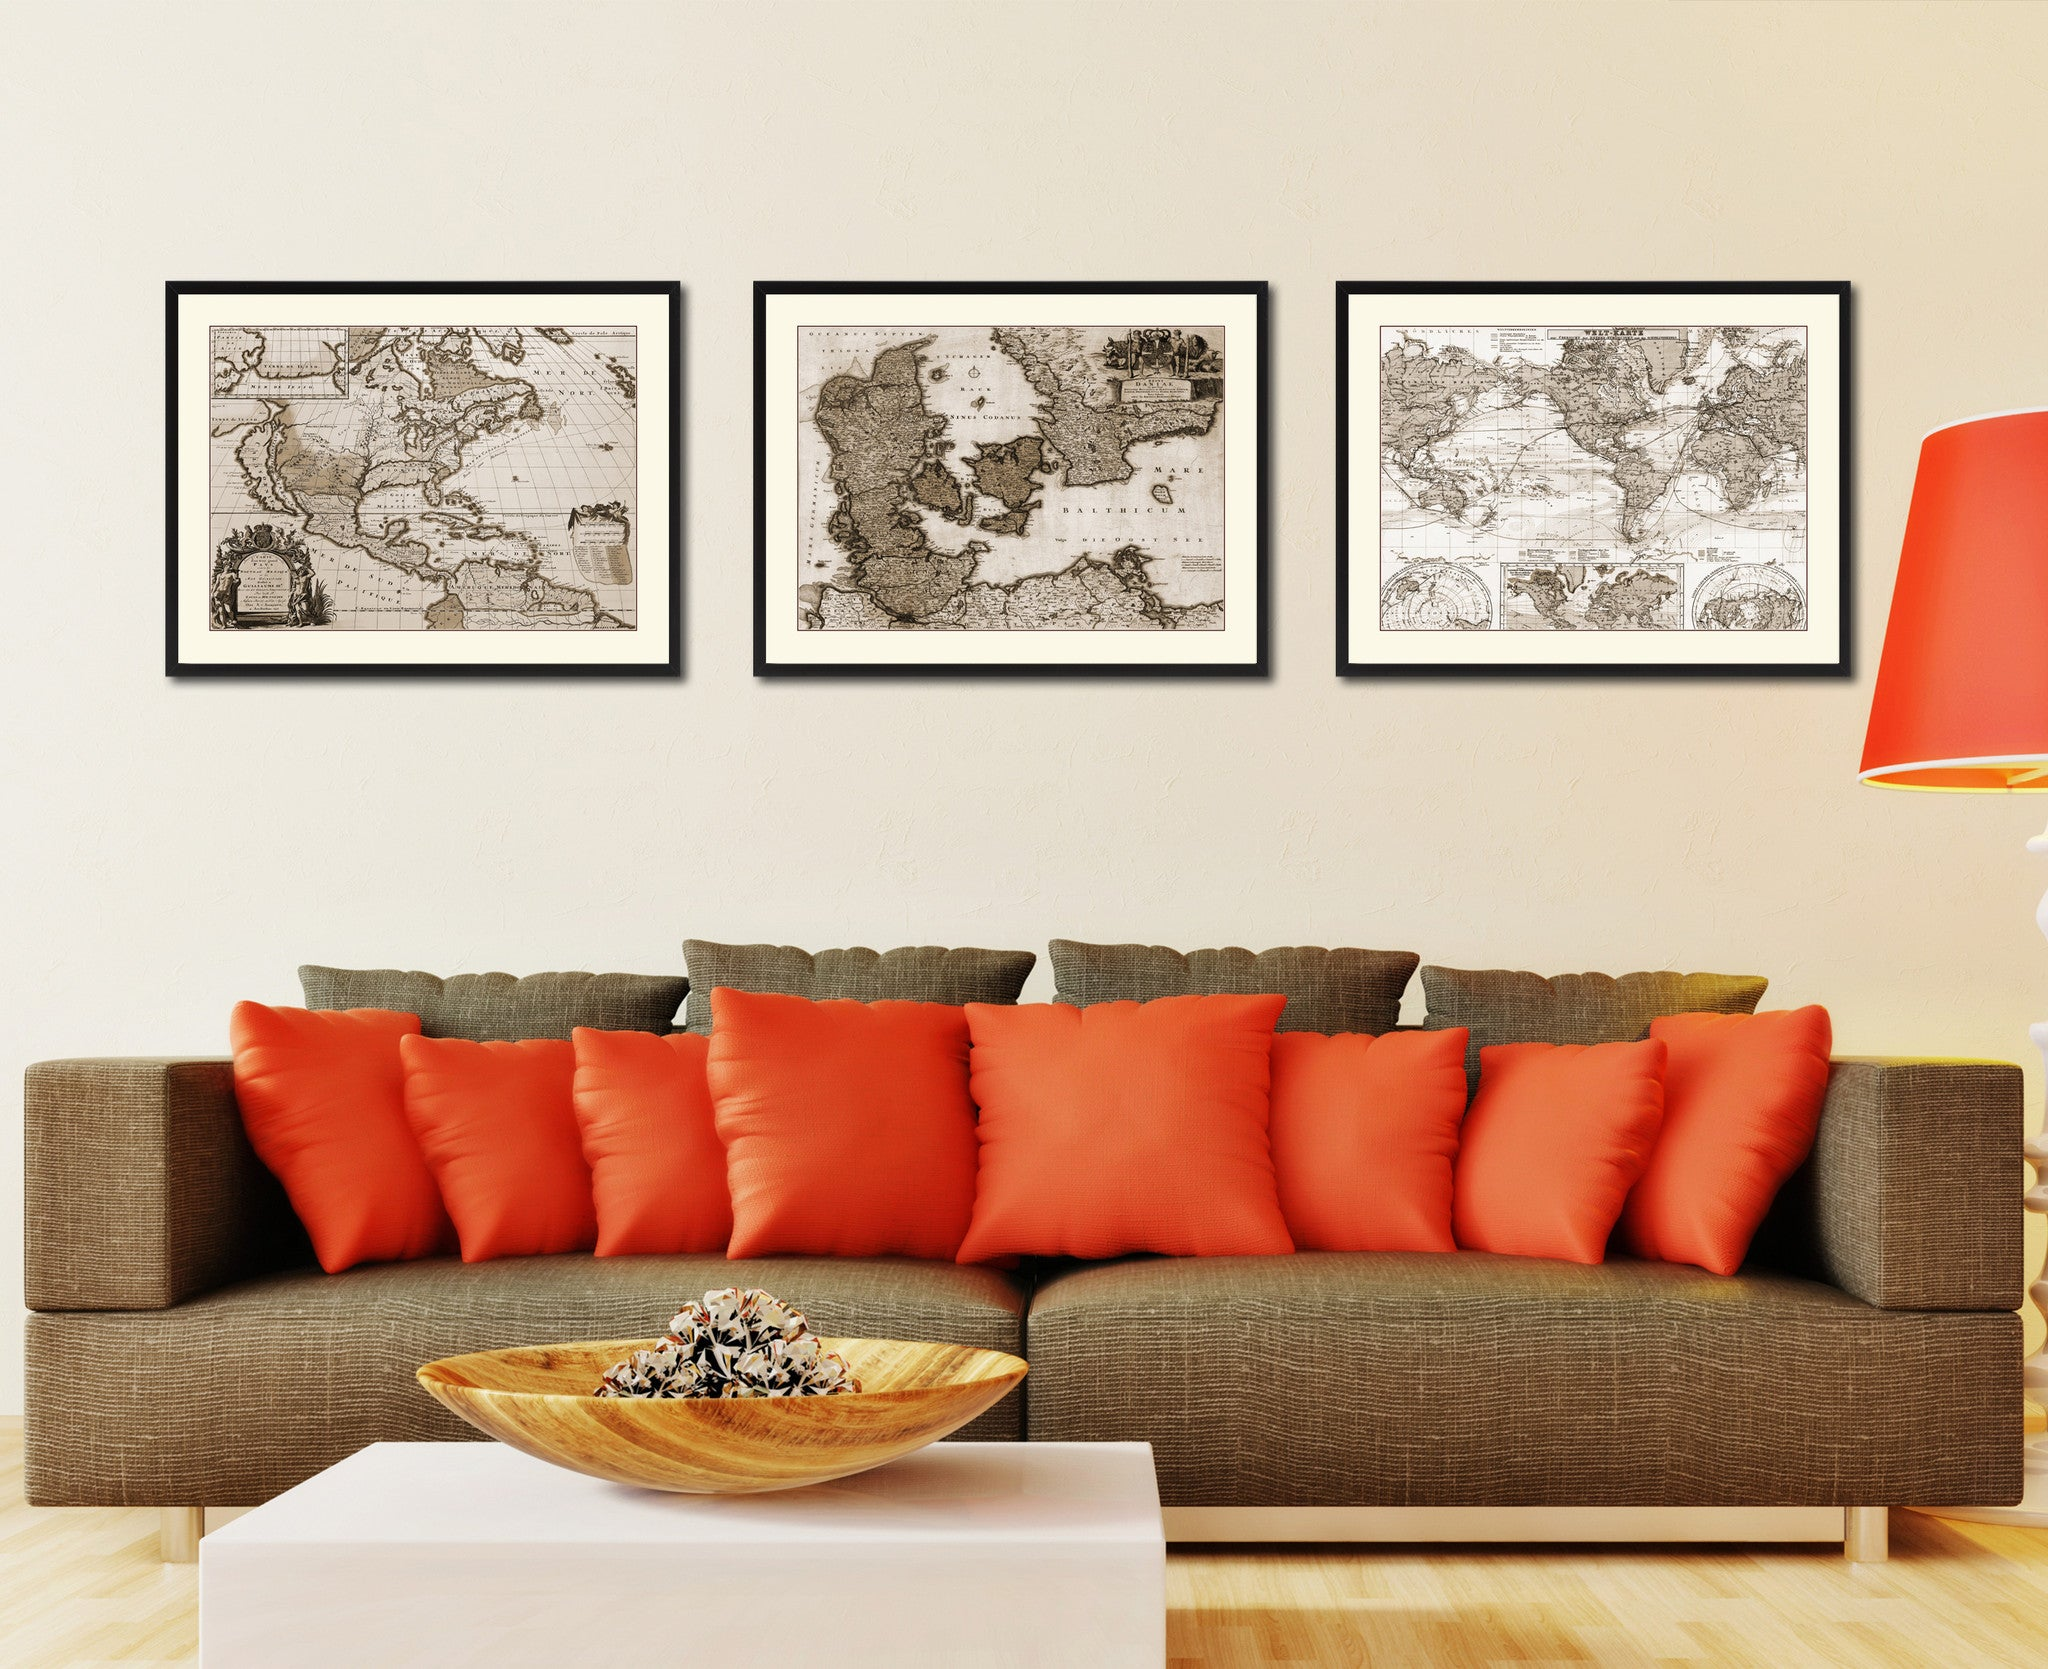 Denmark Centuries Vintage Sepia Map Canvas Print, Picture Frame Gifts Home Decor Wall Art Decoration